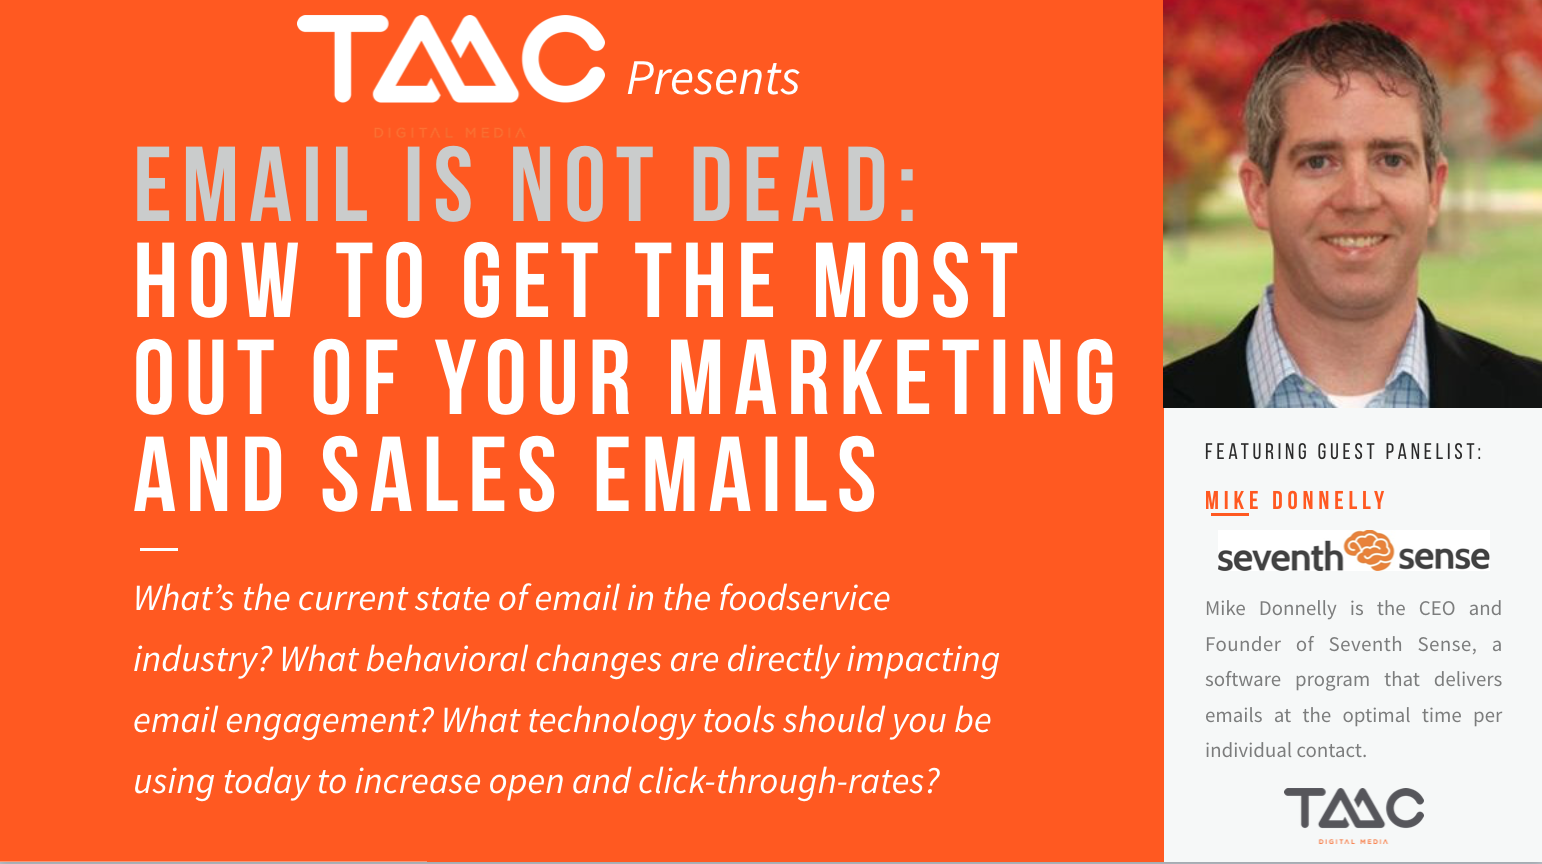 email is not dead - tmc digital media